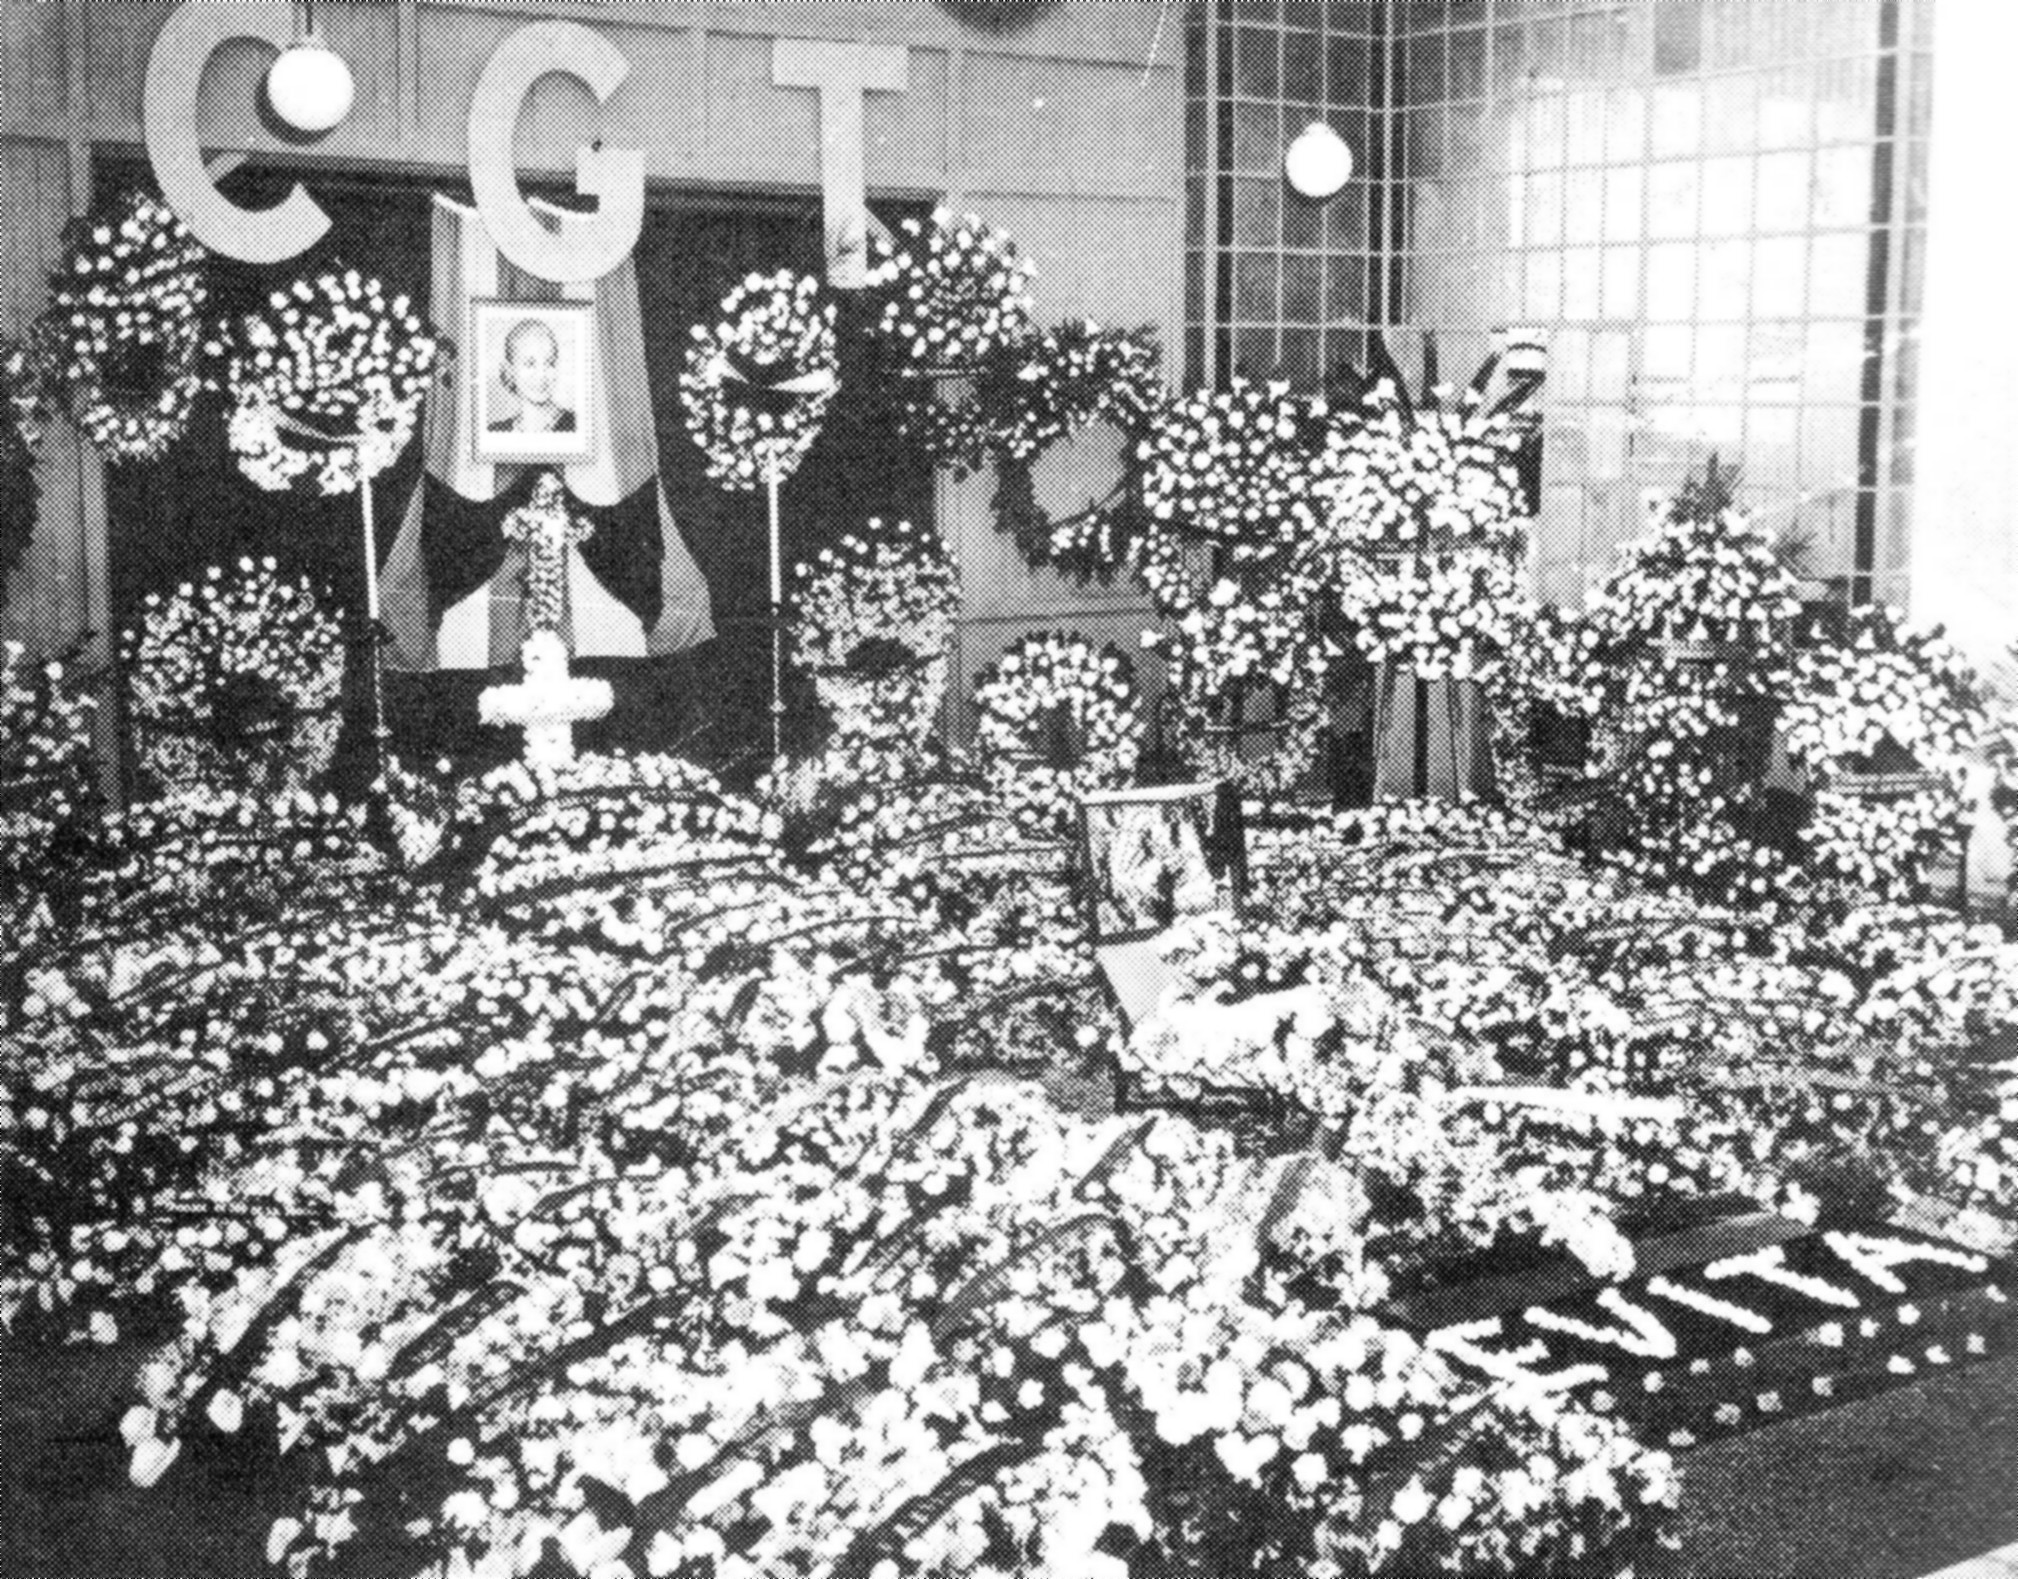 https://upload.wikimedia.org/wikipedia/commons/d/d3/CGT_Funerales_Evita.JPG